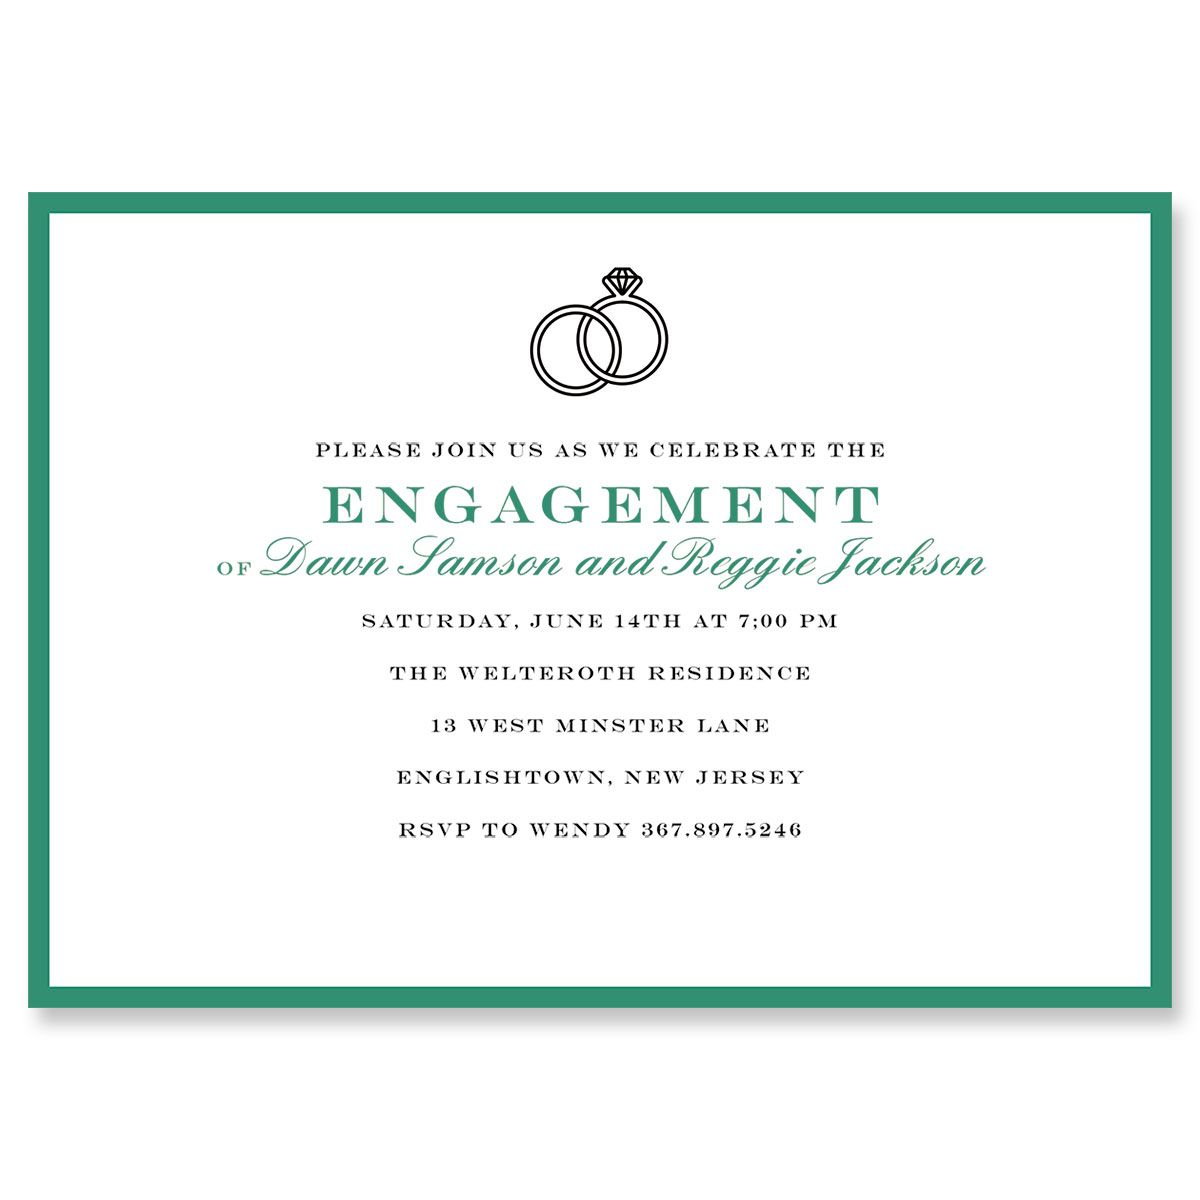 Entwined Ring Personalized Invitations